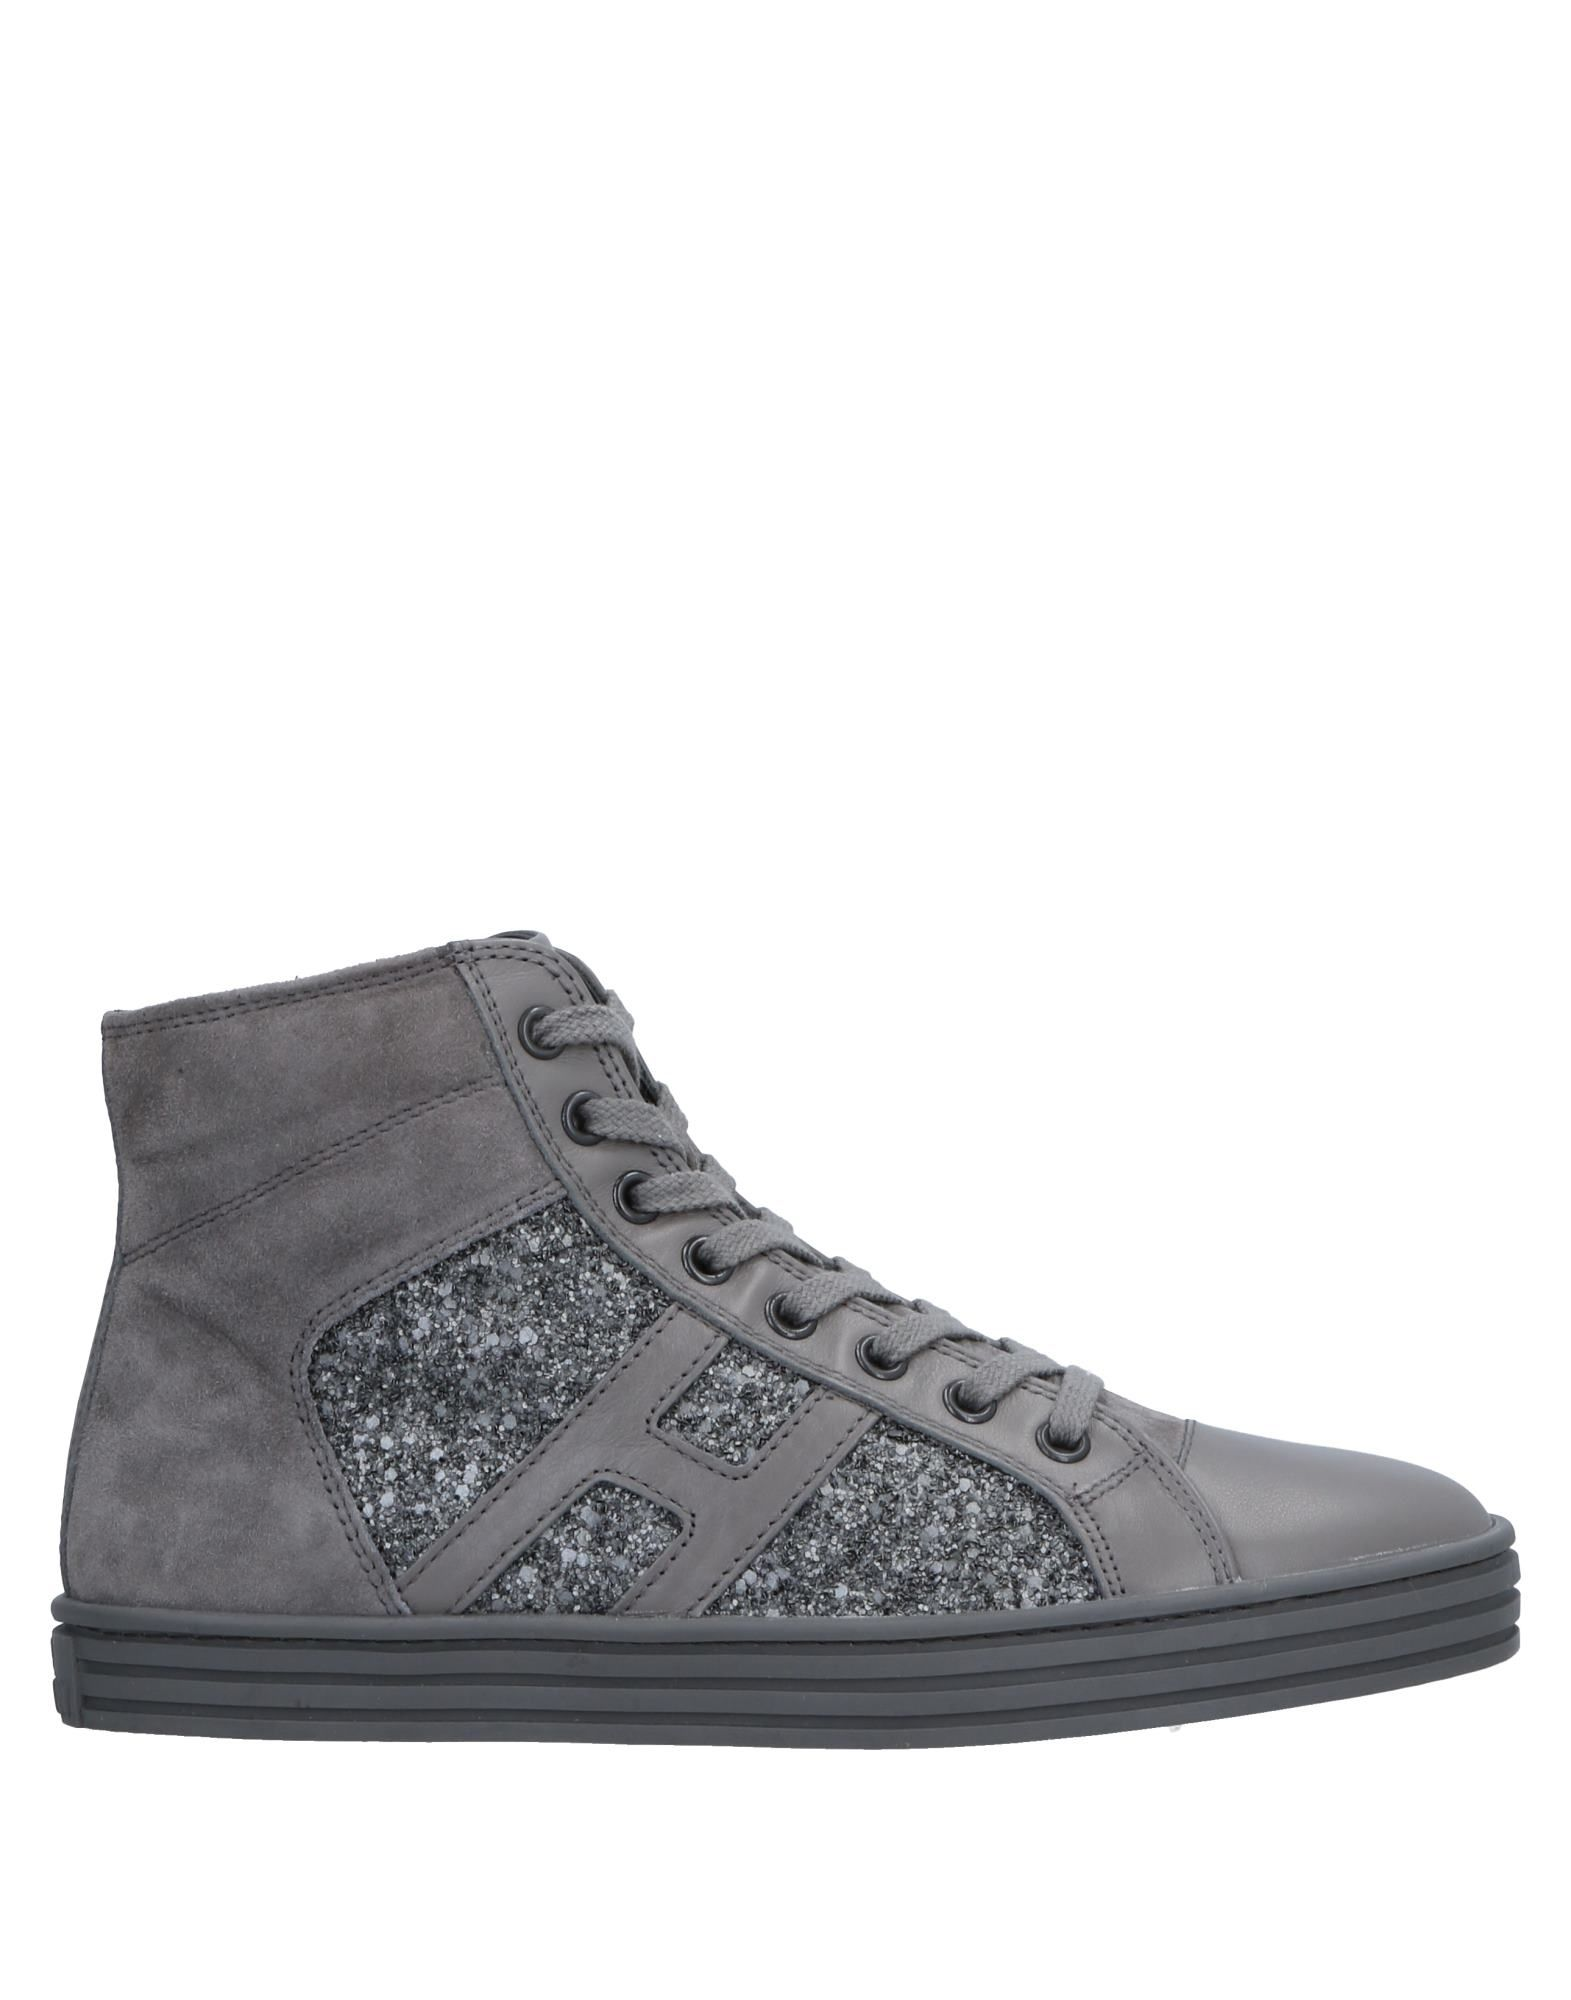 Hogan Rebel Sneakers - Women Hogan Rebel Sneakers - online on  Canada - Sneakers 11493196AJ abb05c